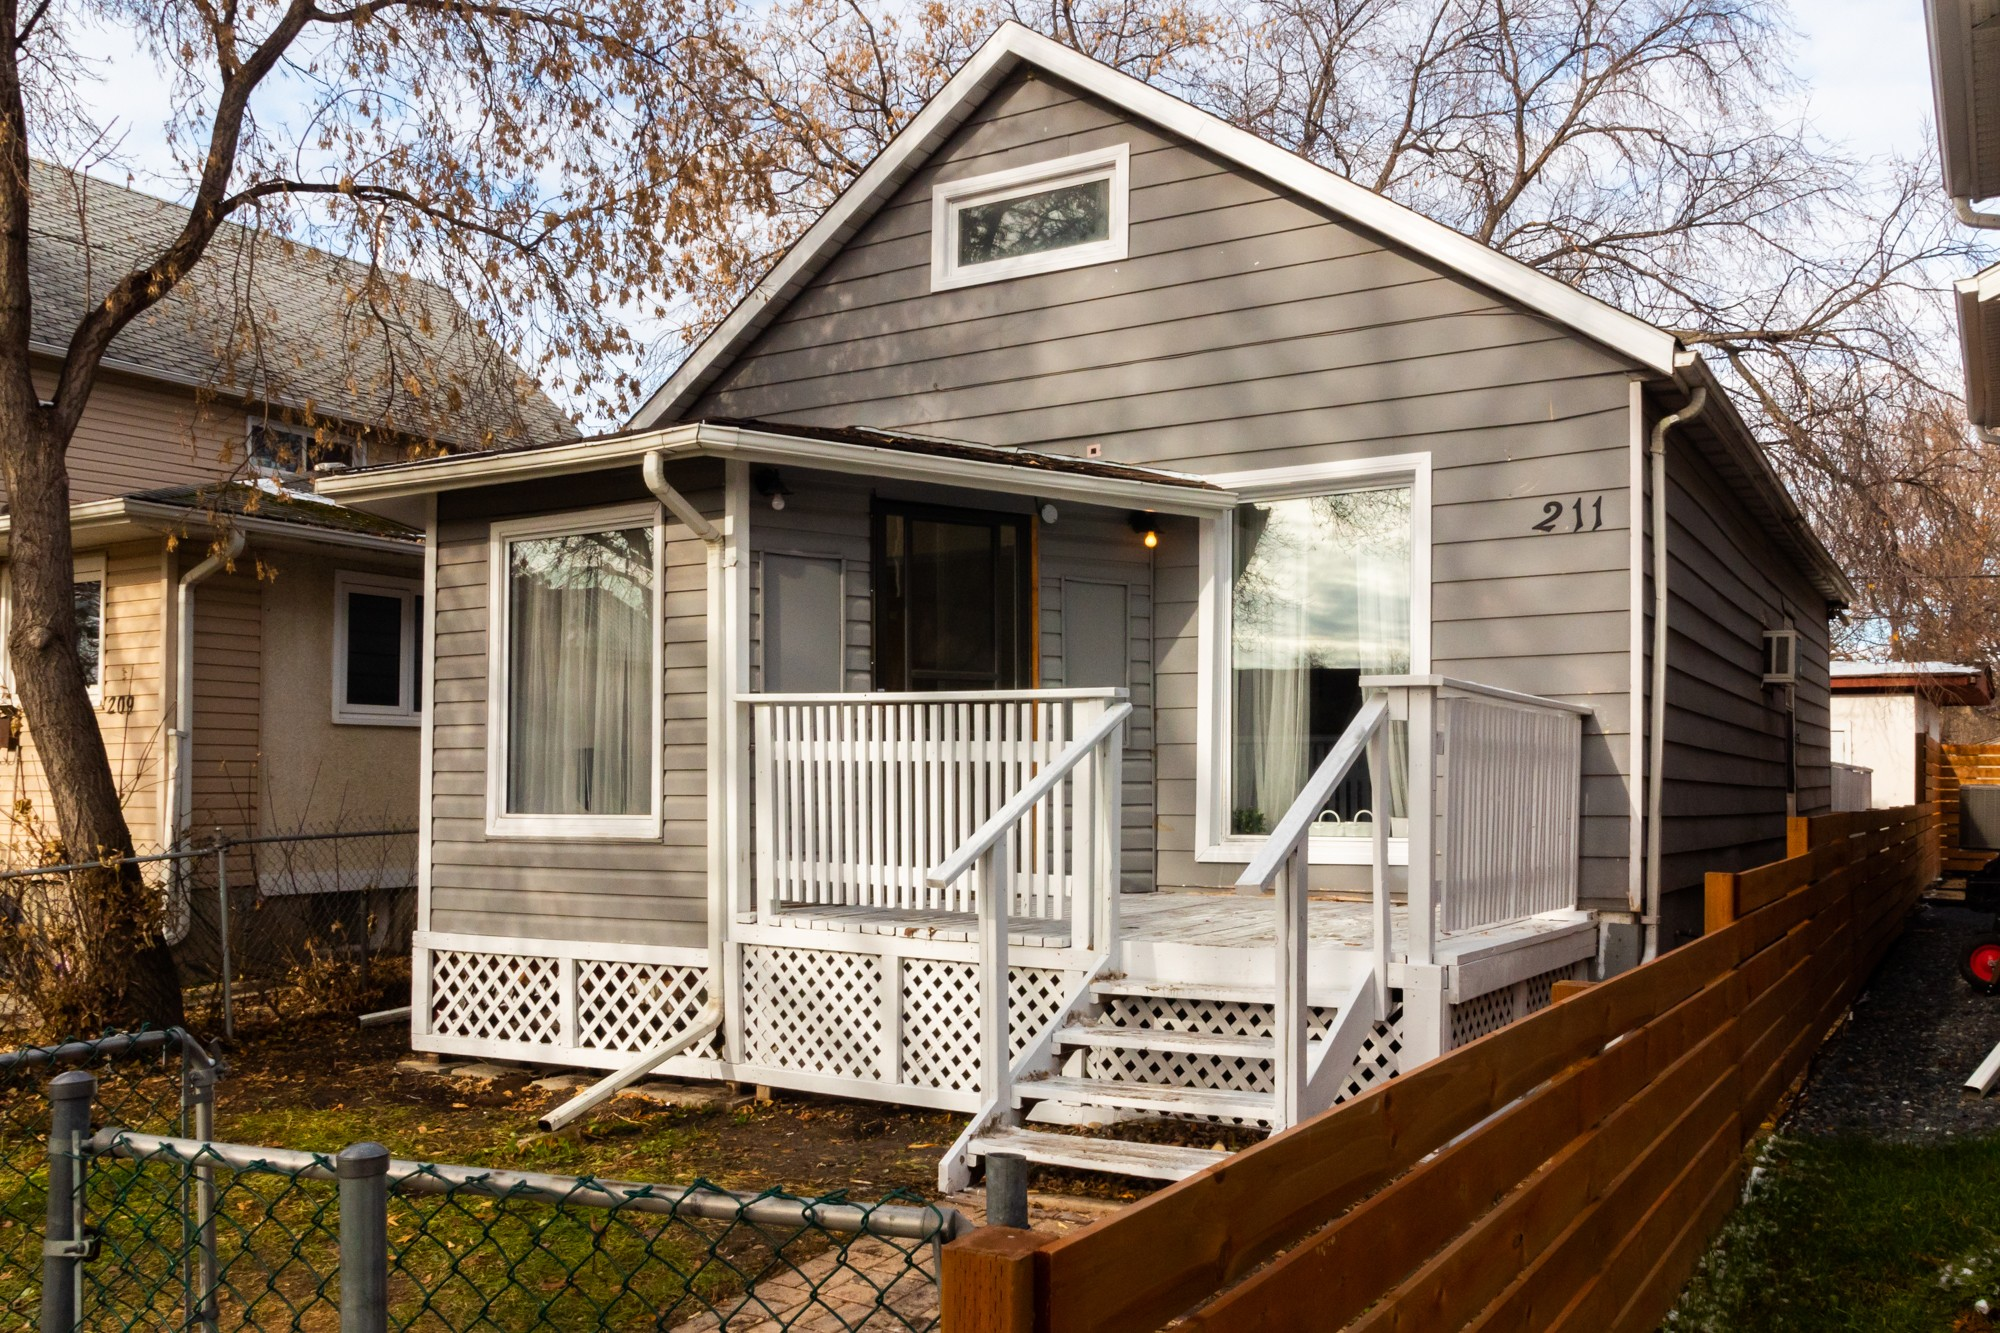 211-victoria-ave-for-sale-bobby-wall-winnipeg-realtor